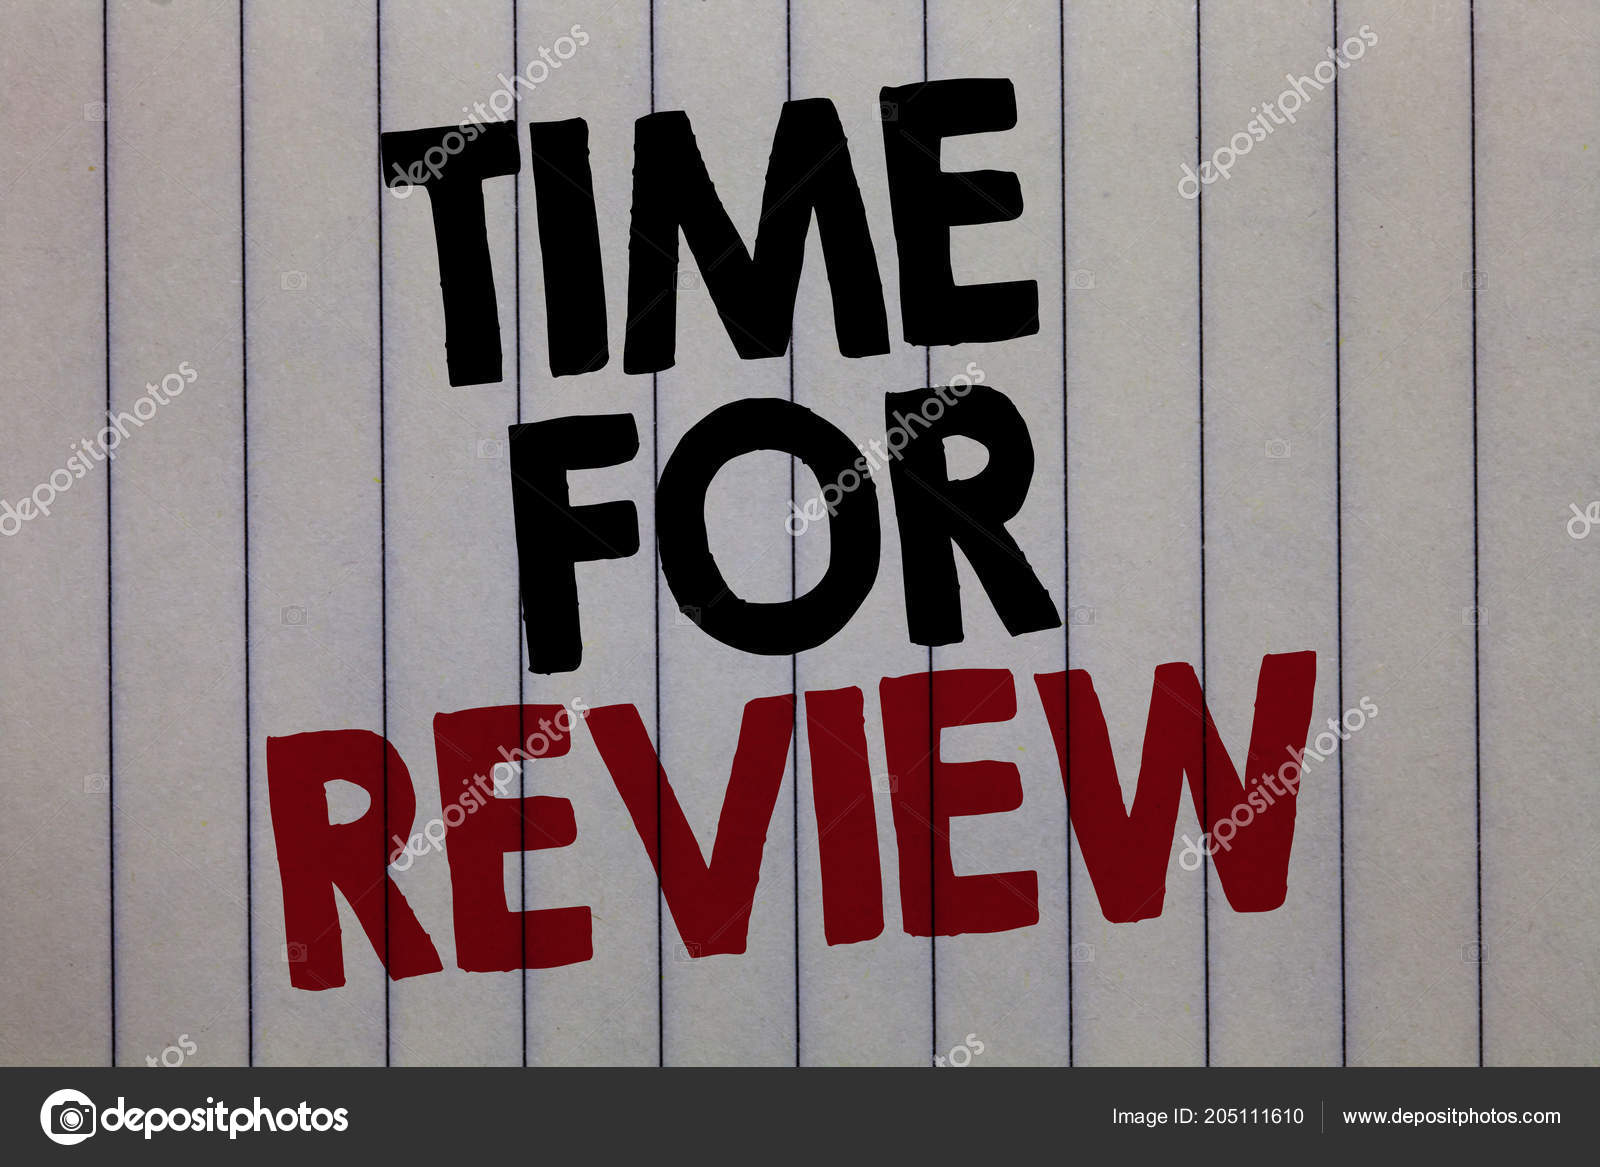 review paper meaning